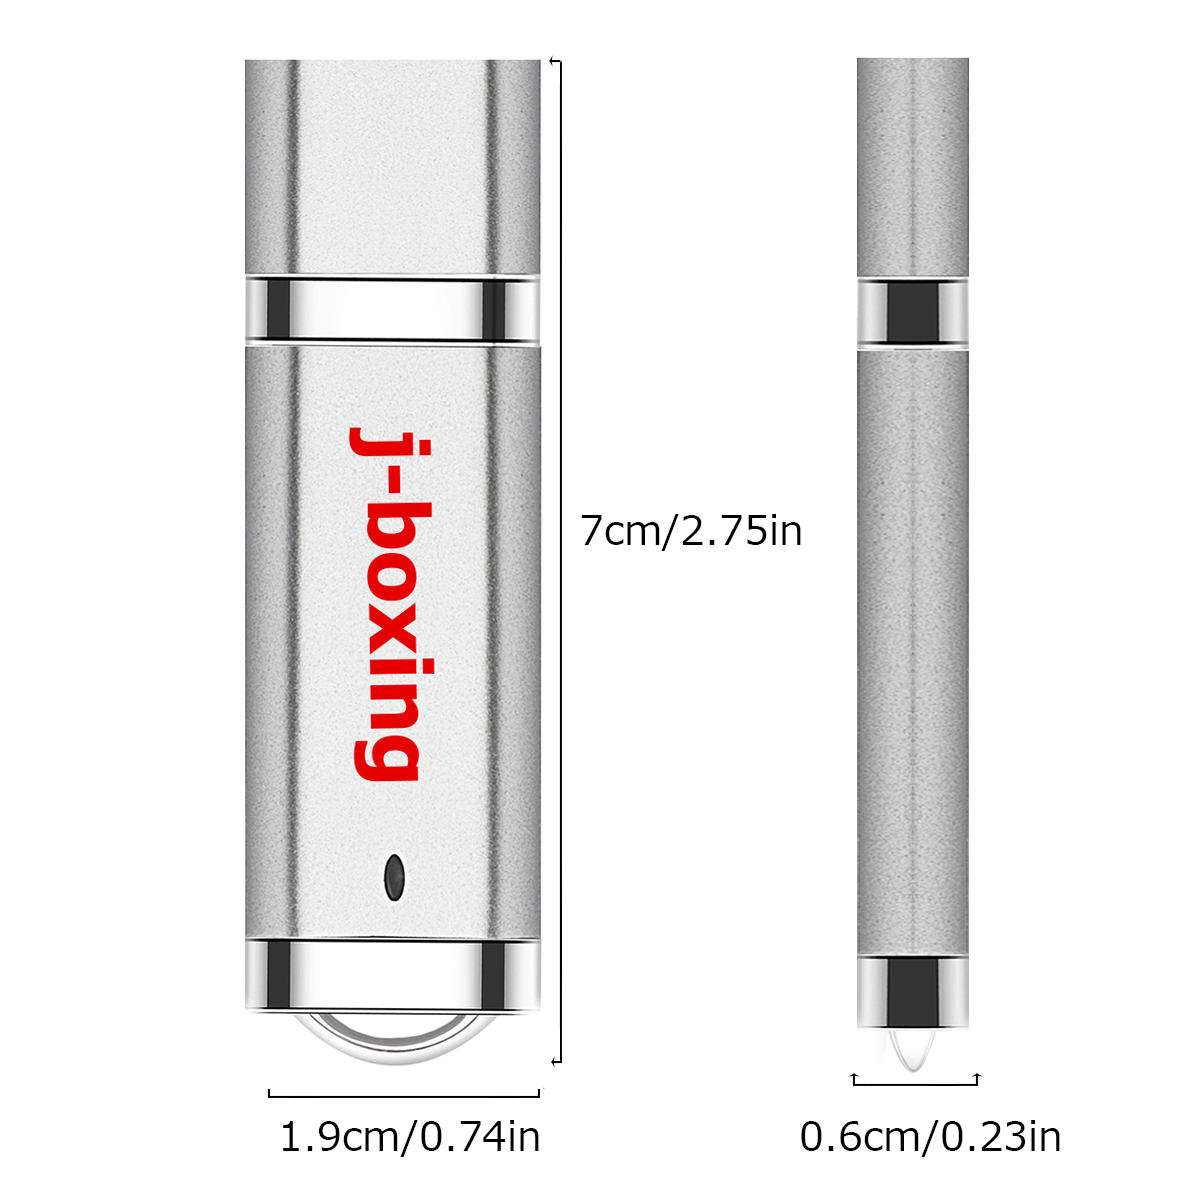 J boxing USB Flash Drives Bulk 16GB 32GB Lighter Design Thumb Drives 4GB 8GB USB 2 0 Flash 1GB 2GB Zip Drives Silver 5PCS Pack in USB Flash Drives from Computer Office